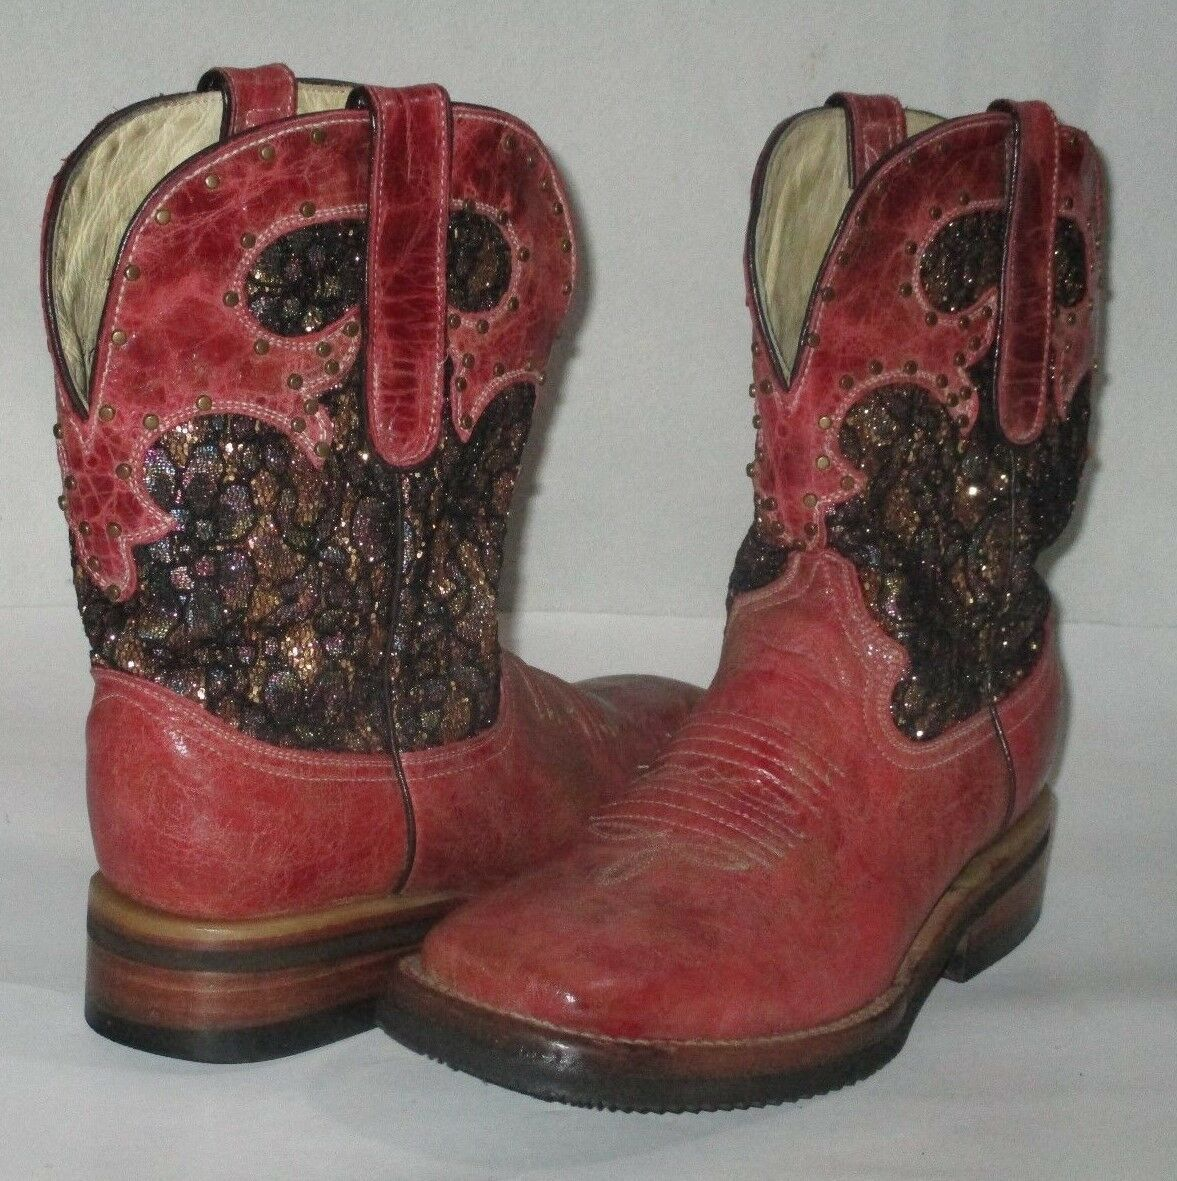 Ferrini Western Womens Red Leather Black Glittery Inlay Square Toe Boots SZ 7.5D